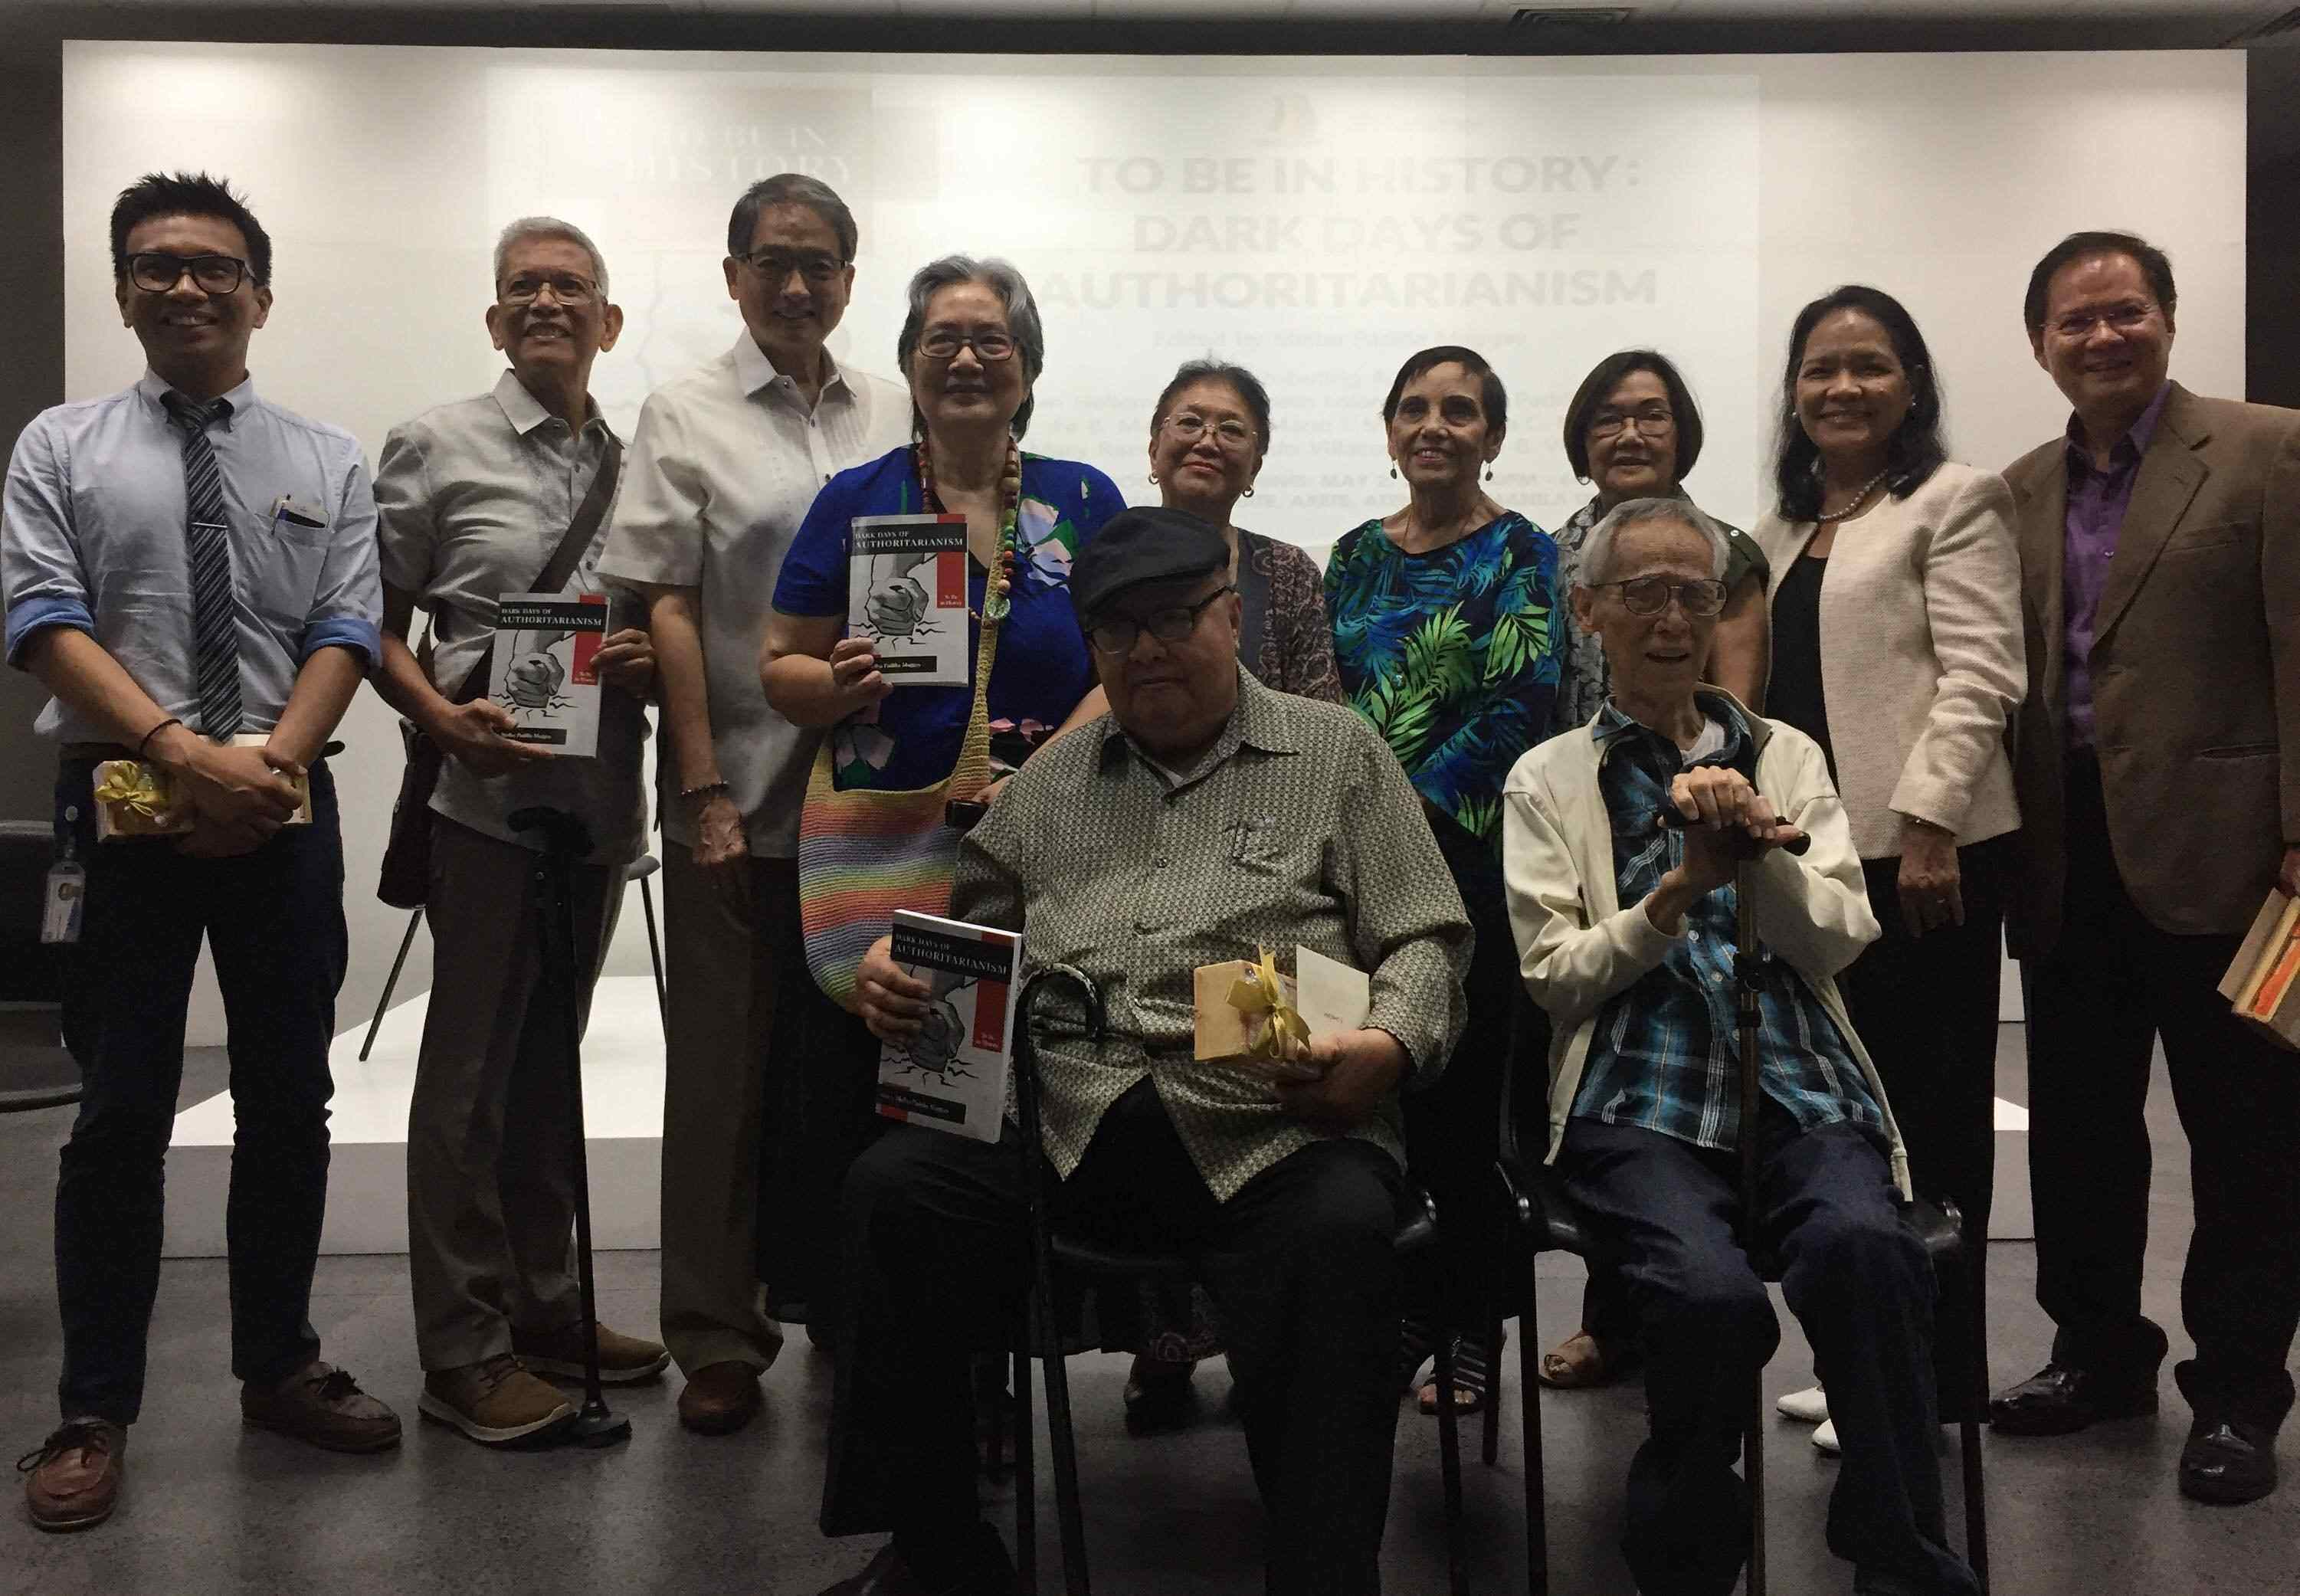 PRIDE. Contributing authors together with guest speakers proudly present the book during the launch on May 2, 2019, at Ateneo's Arete. Photo by Maria Gabriela Aquino/Rappler